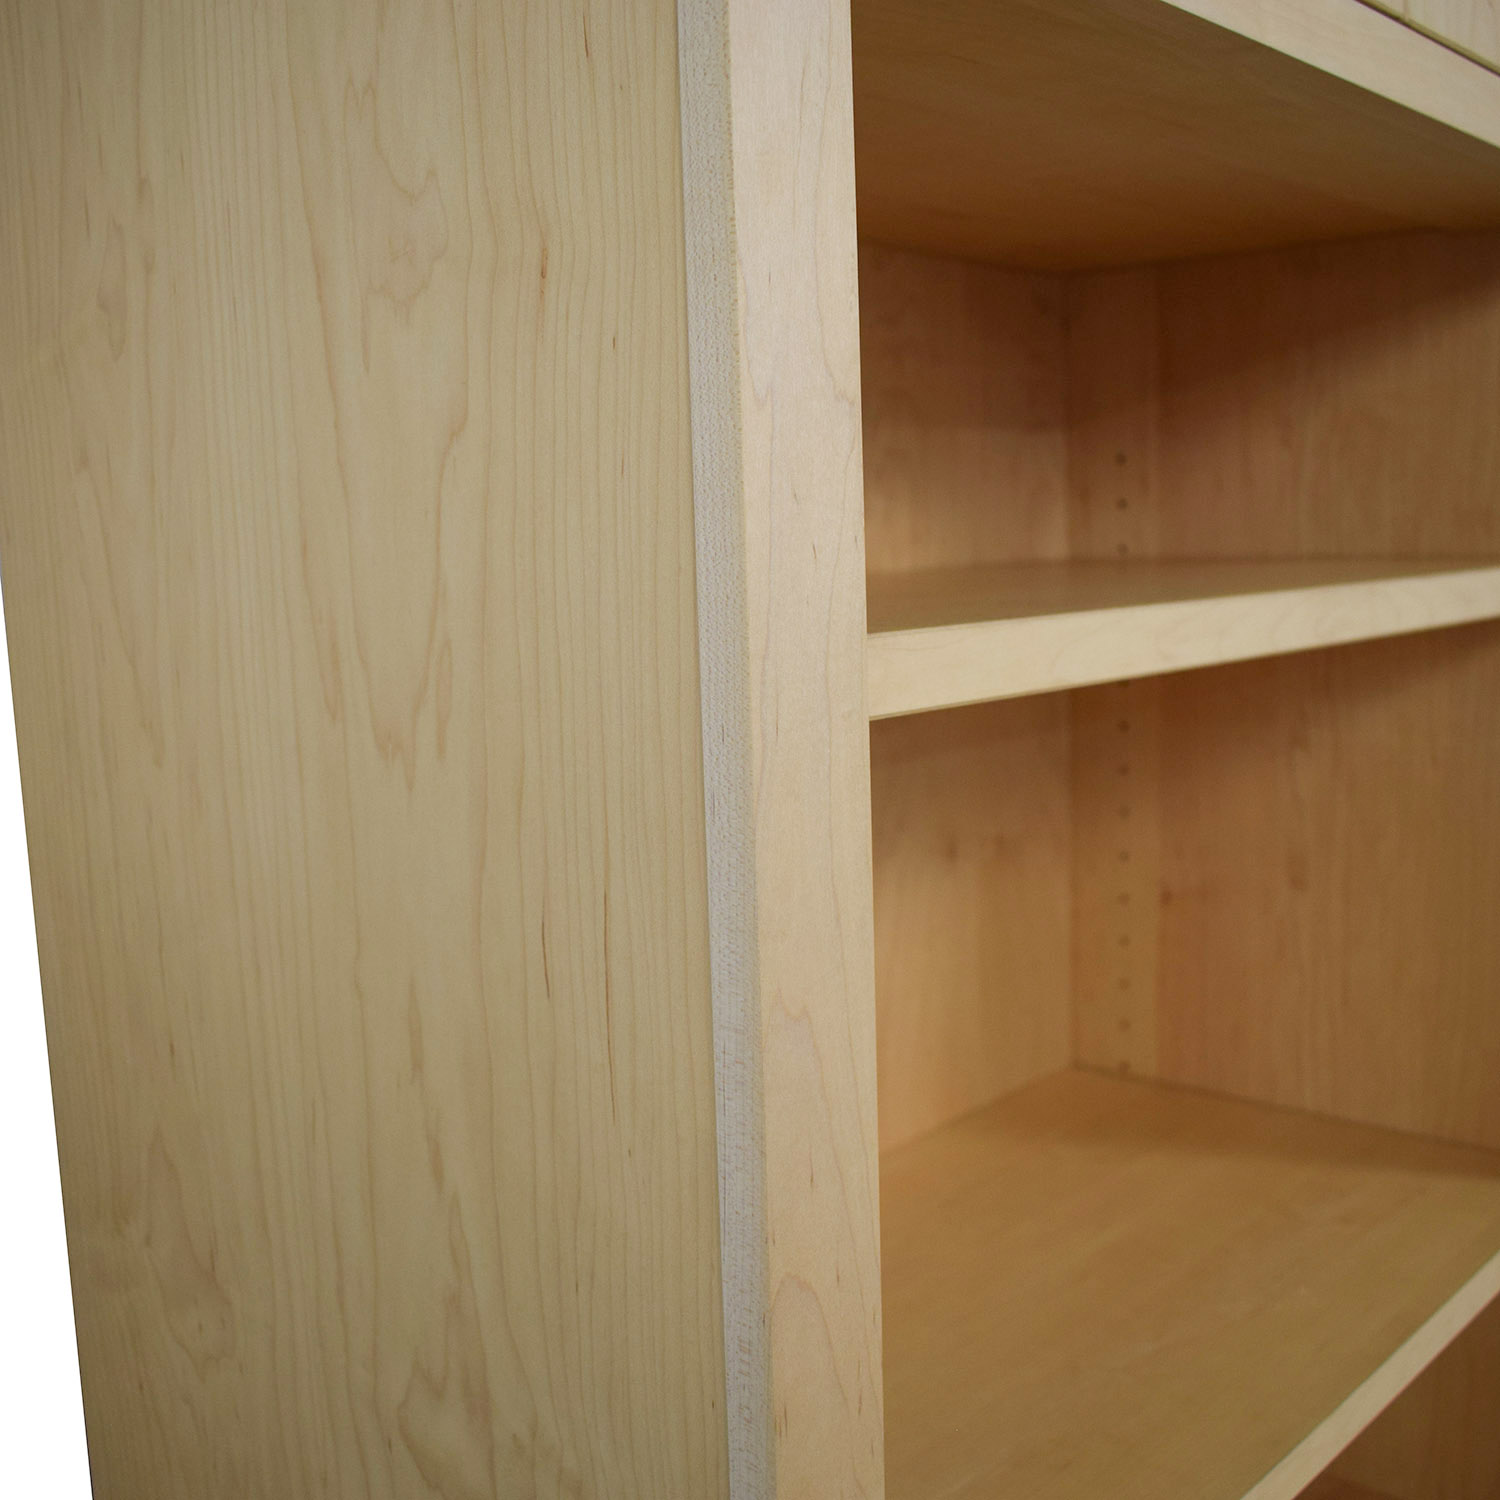 Room & Board Woodwind Bookcase with Doors / Storage